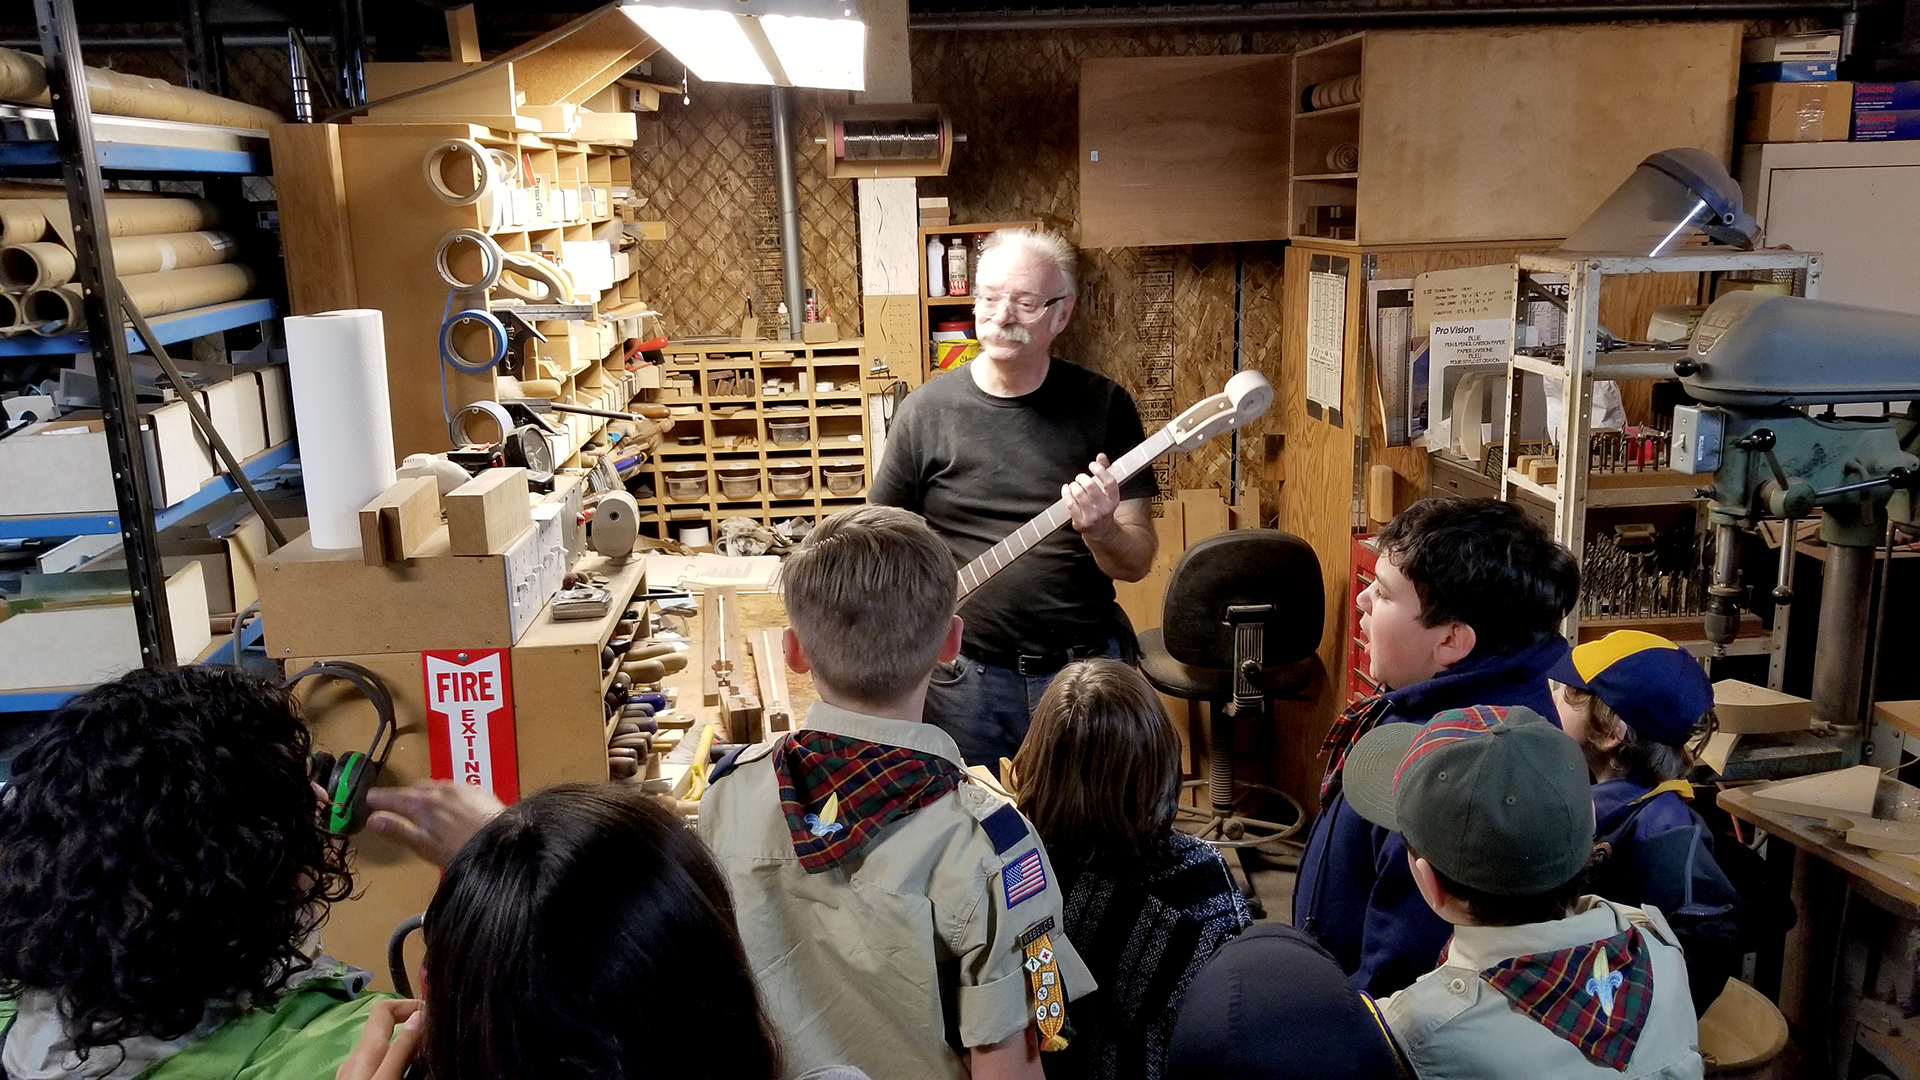 (above) Boy Scouts learning from Bruce Johnson, one of several luthiers (guitar makers) at the Packinghouse Creative, teaching scouts about how he uses each tool in the guitar making process.